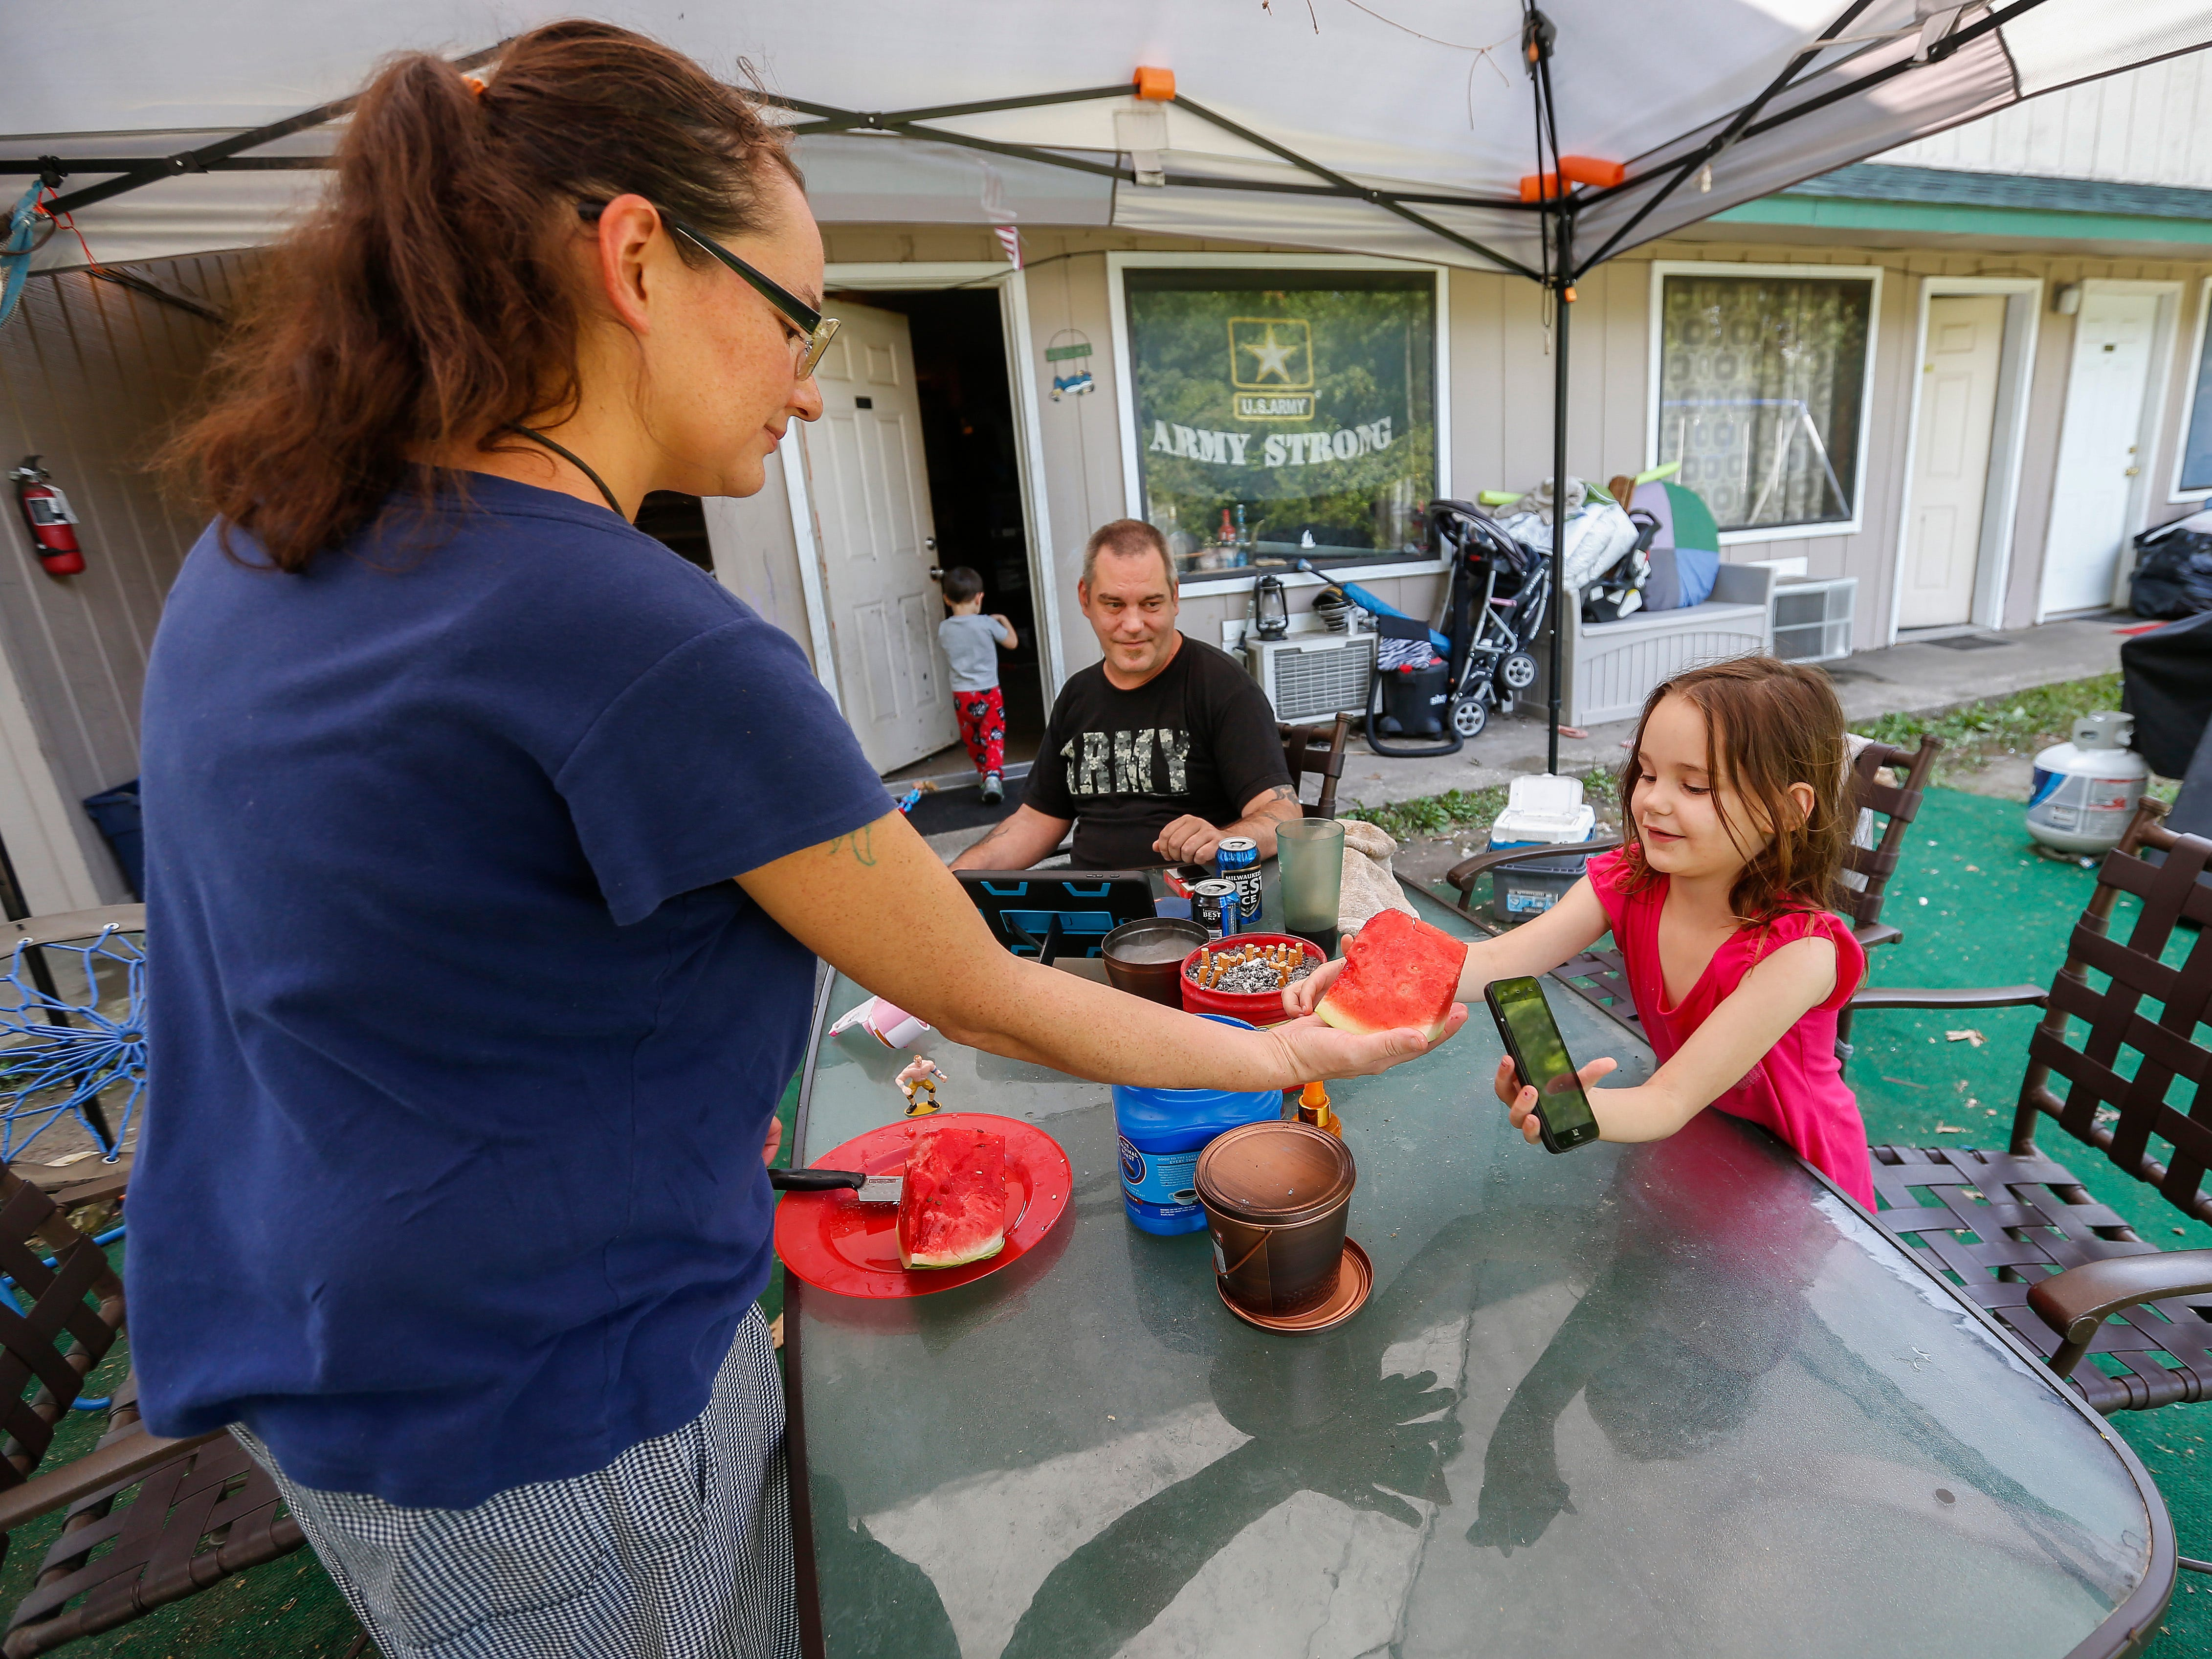 Amanda Norris gives a slice of watermelon to her daughter Deborah Norris, 6, outside of their room at the extended stay hotel they live in in Branson on Wednesday, July 18, 2018. They spend most of their time outside of their room in the outdoor seating area they created talking with friends and barbecuing.